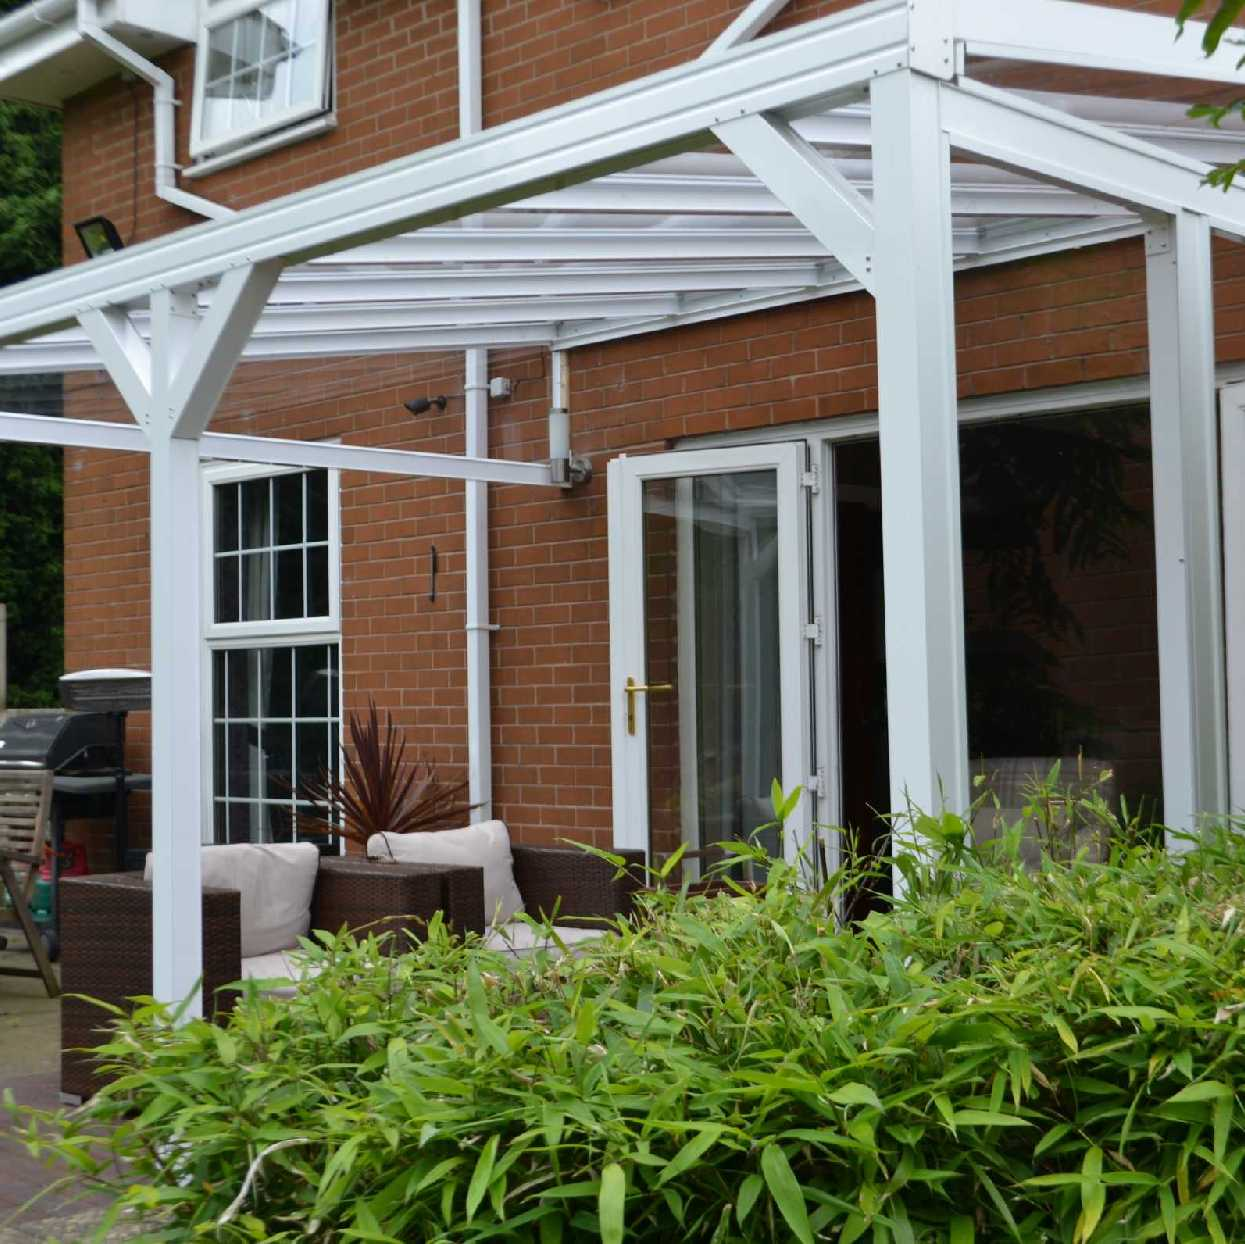 Omega Smart Lean-To Canopy with 6mm Glass Clear Plate Polycarbonate Glazing - 9.1m (W) x 2.5m (P), (5) Supporting Posts from Omega Build